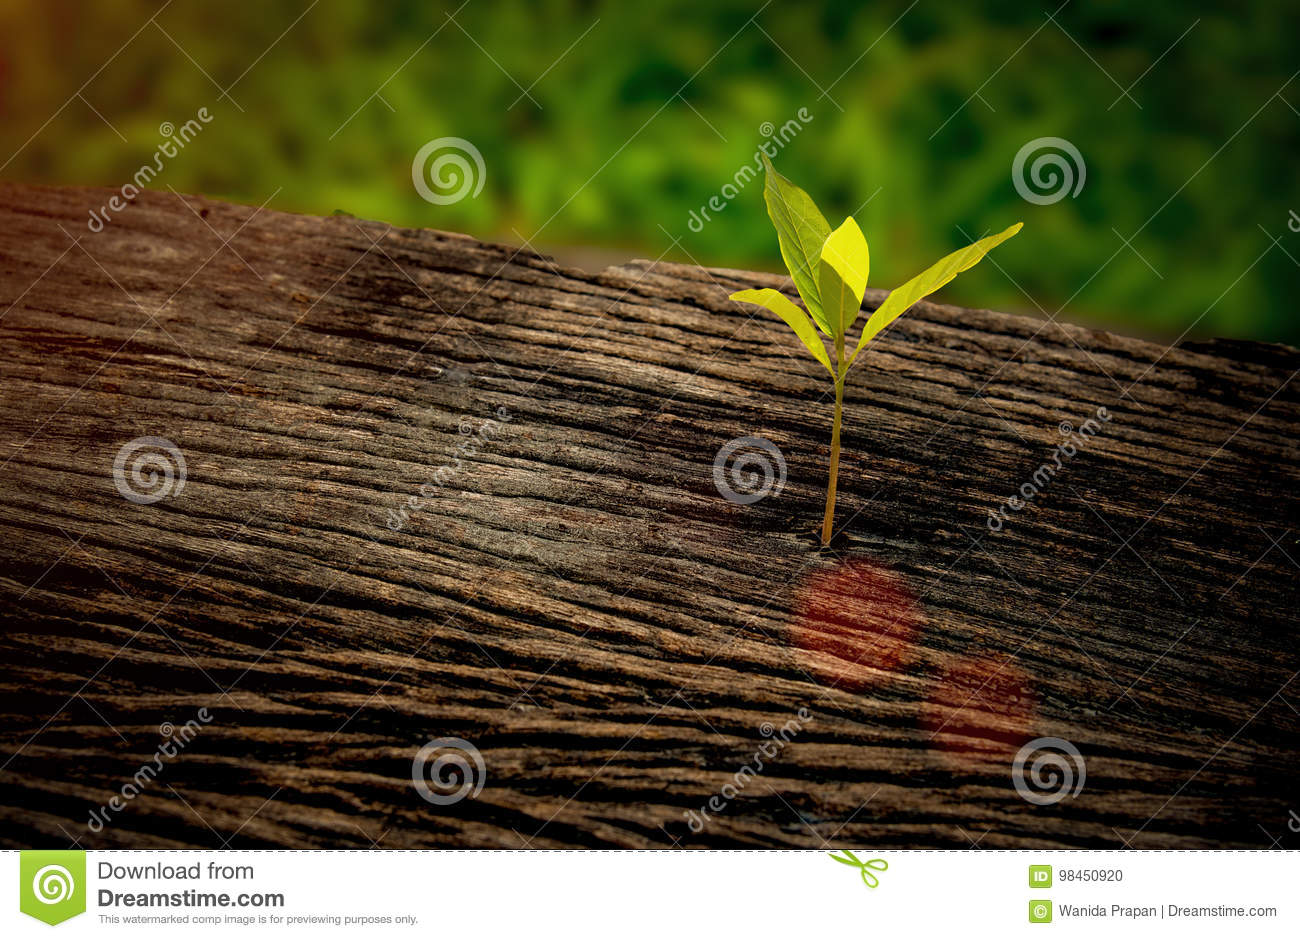 Beautiful seedling growing in the center trunk as a concept of new life in the sunrise morning,